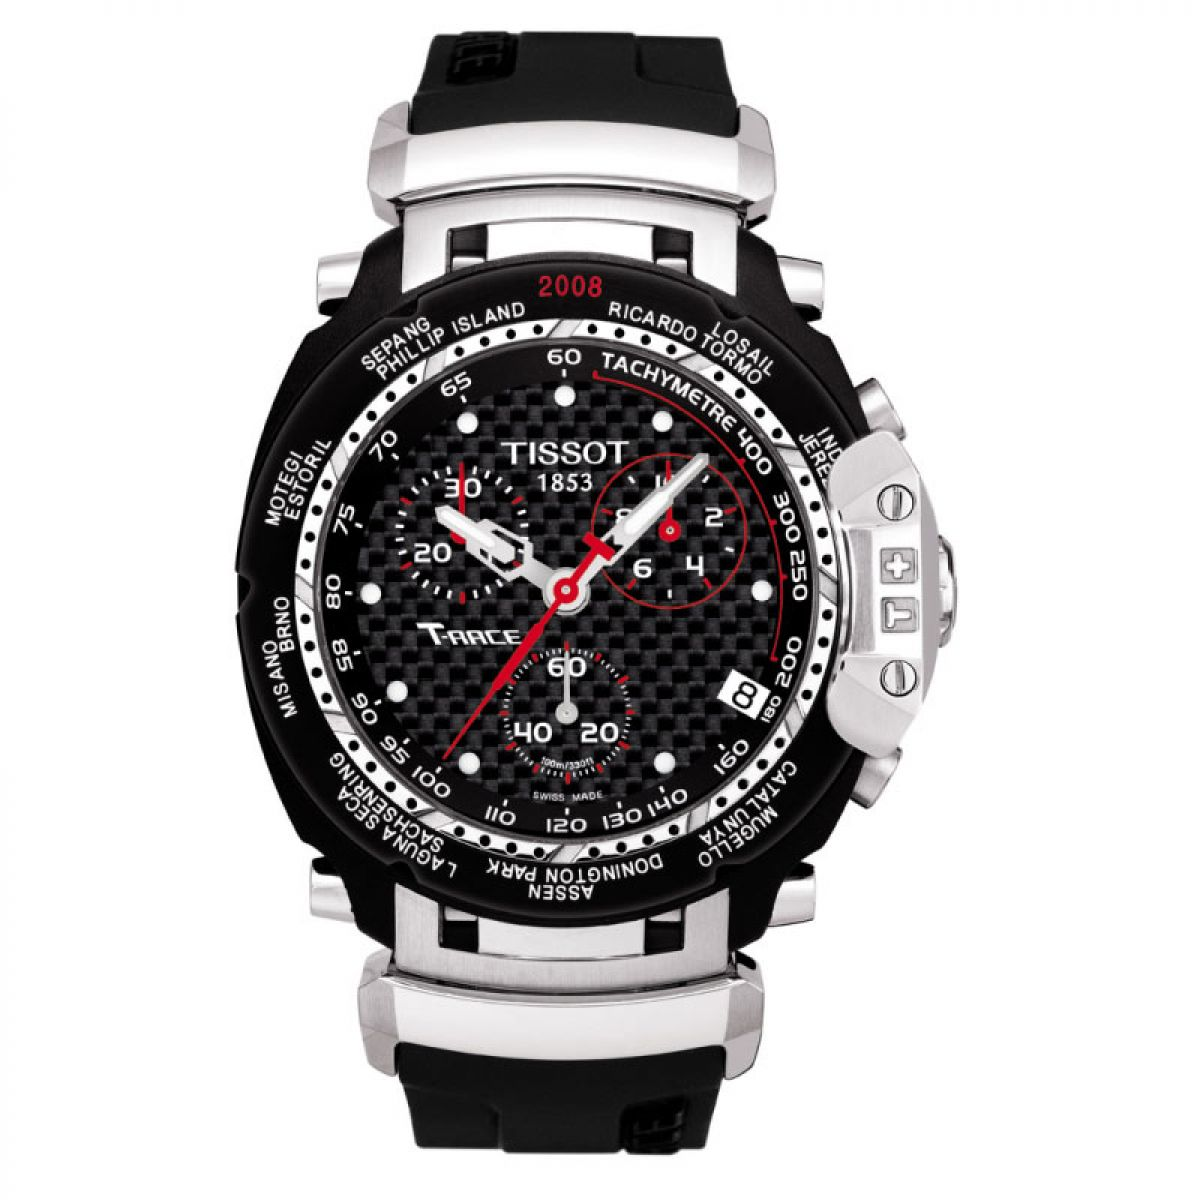 gents tissot t race motogp 2008 chronograph watch. Black Bedroom Furniture Sets. Home Design Ideas